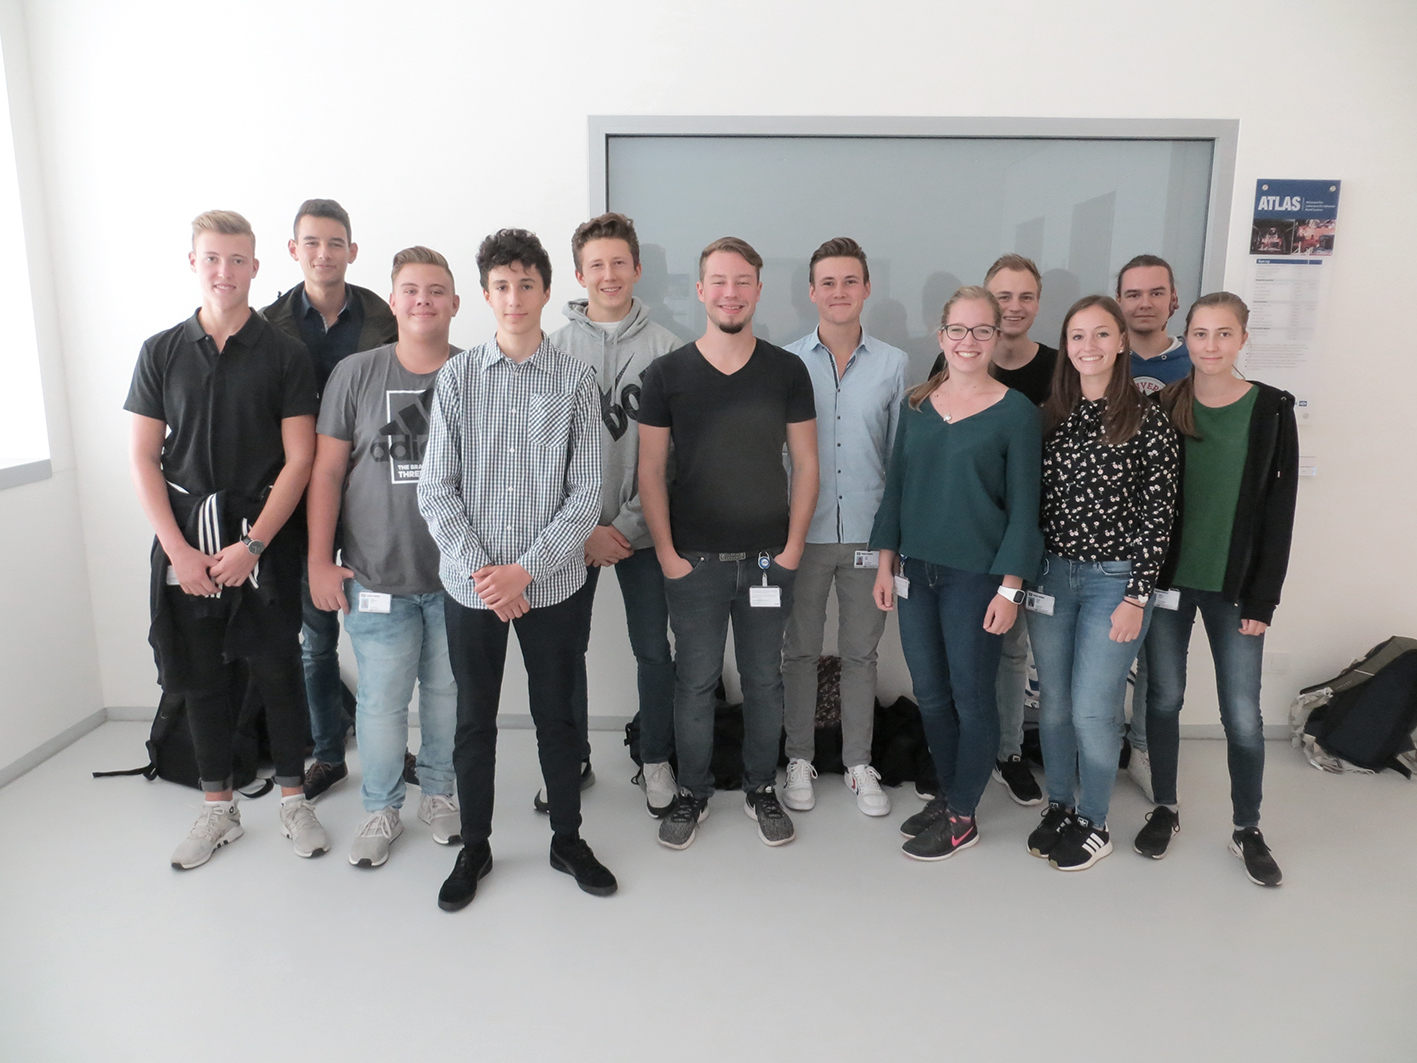 55 young women and men begin apprenticeships at Knorr-Bremse, Knorr